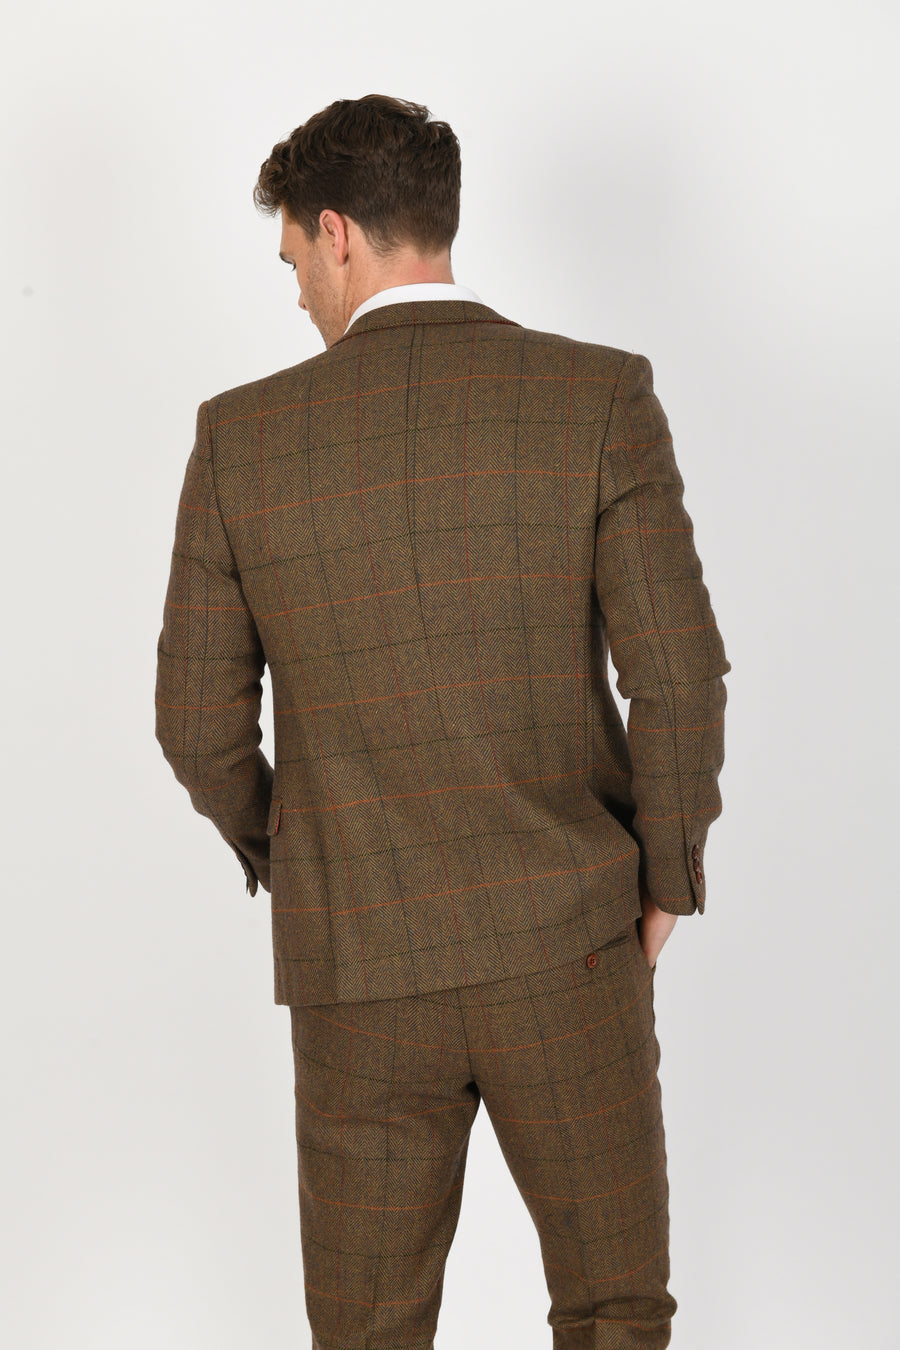 Nelson Wedding Jacket - Wedding Suit Direct